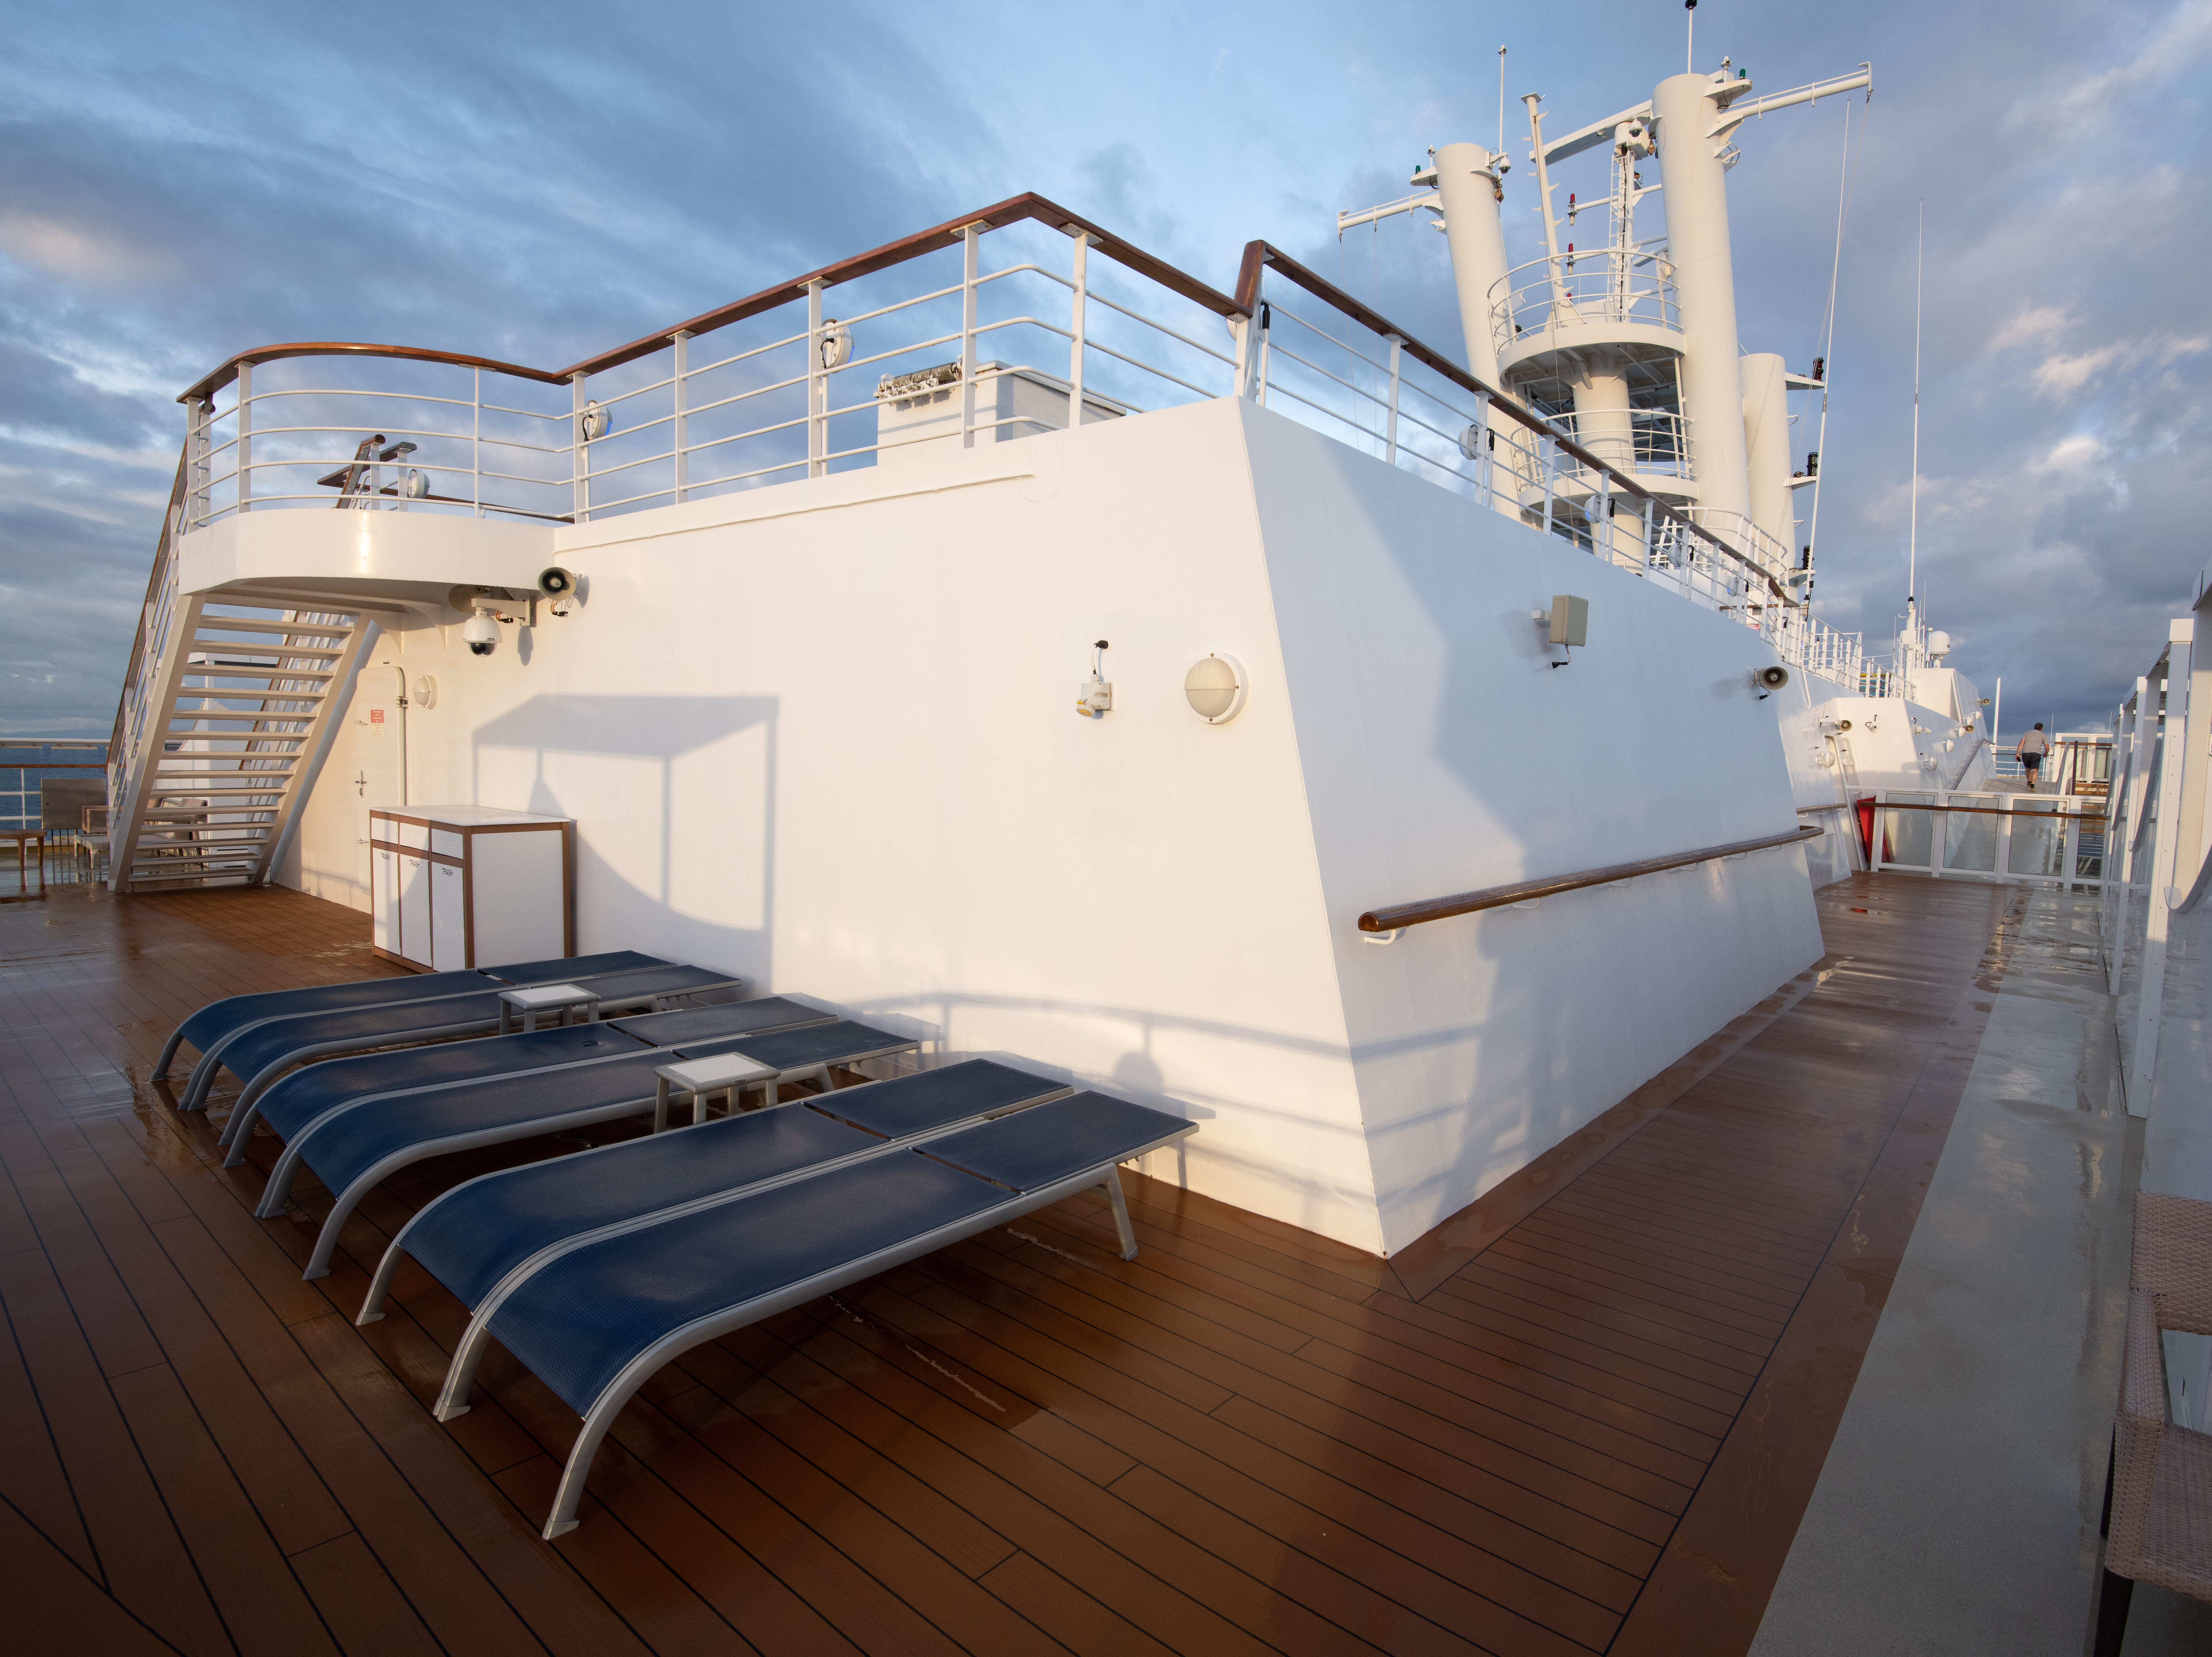 Seating on Deck 14.